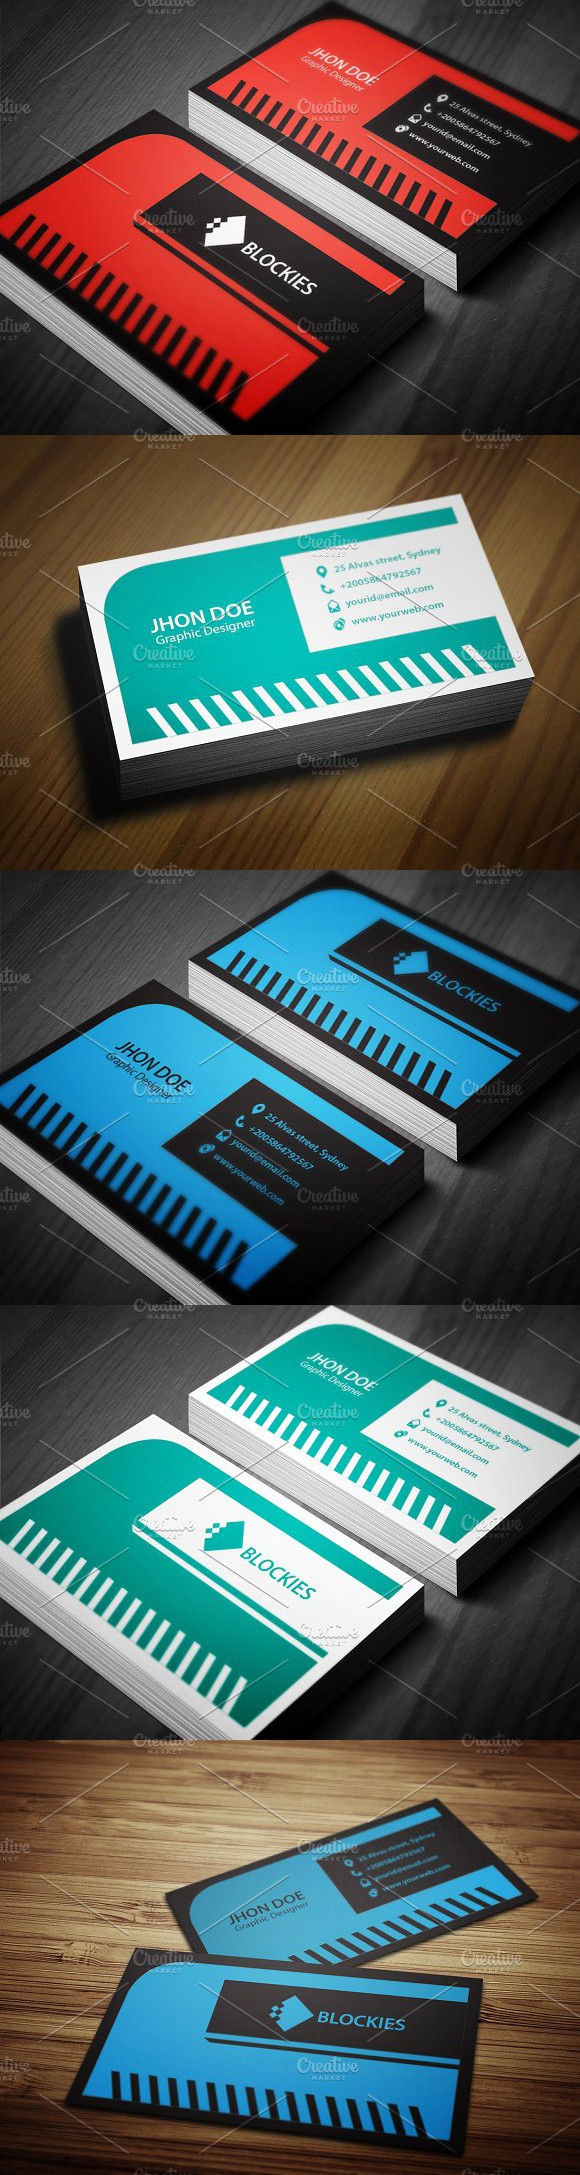 Creative Business Card Template. Creative Business Card Templates